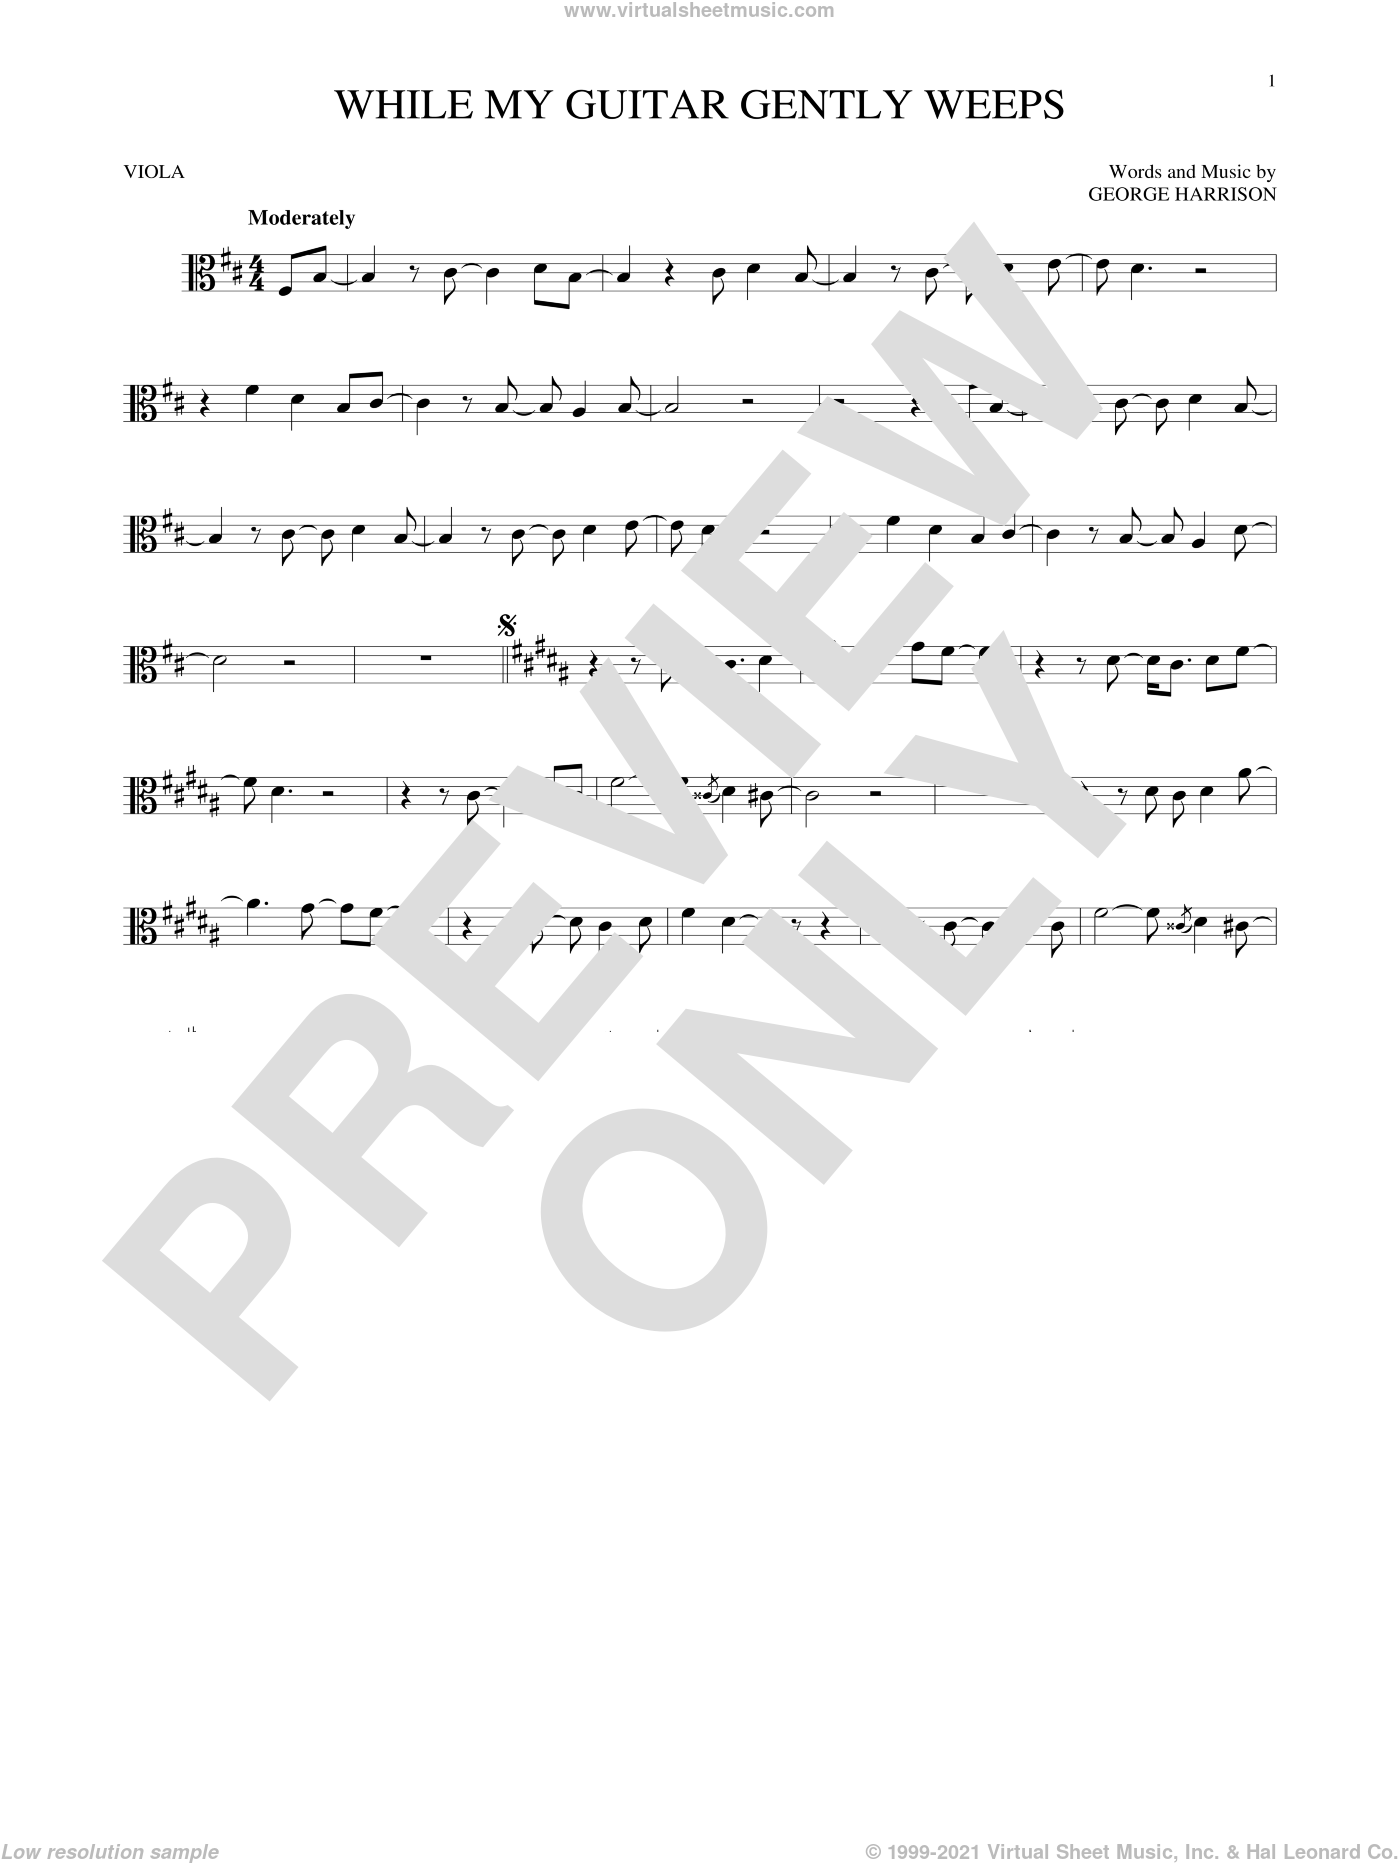 While My Guitar Gently Weeps sheet music for viola solo by The Beatles, intermediate skill level